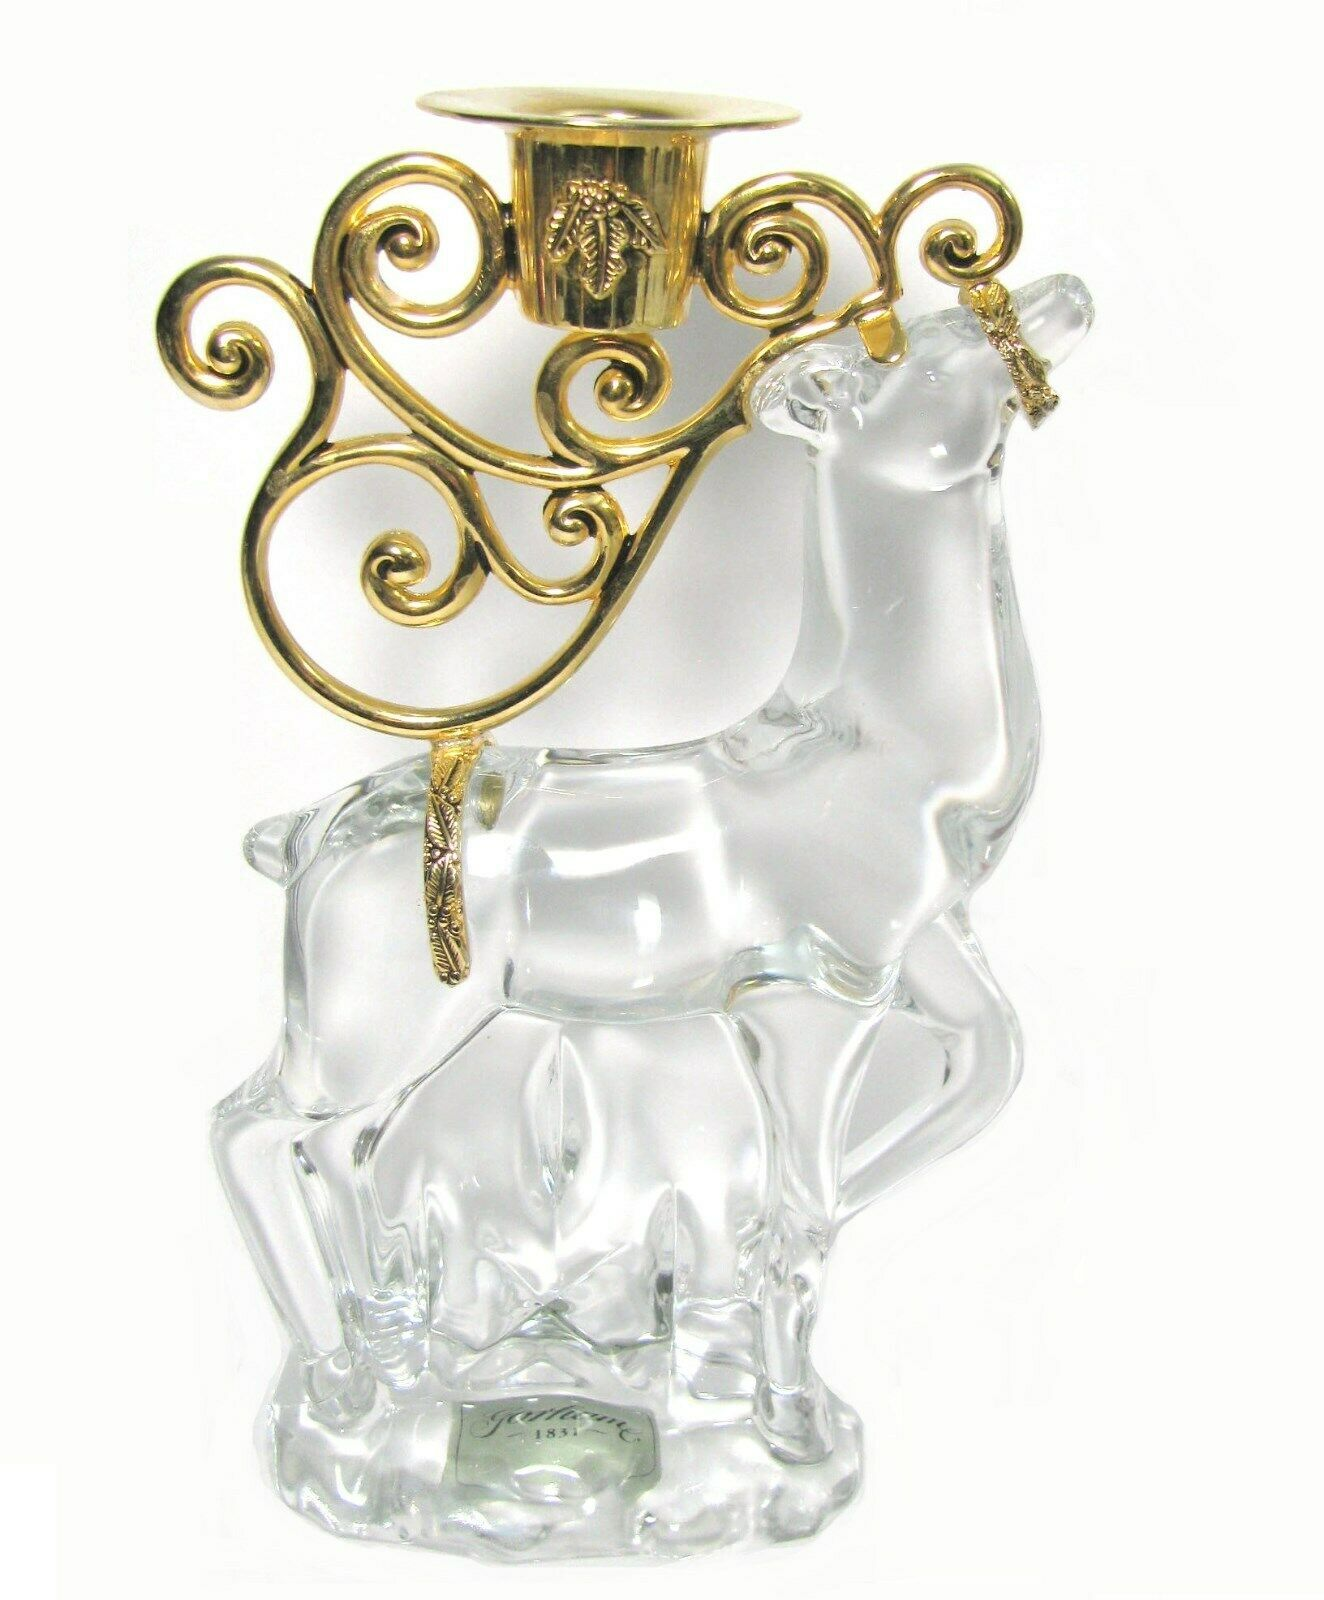 Gorham Crystal Reindeer Candle Holder Gold xmas Centerpiece Figurine Glass Deer  - $40.54